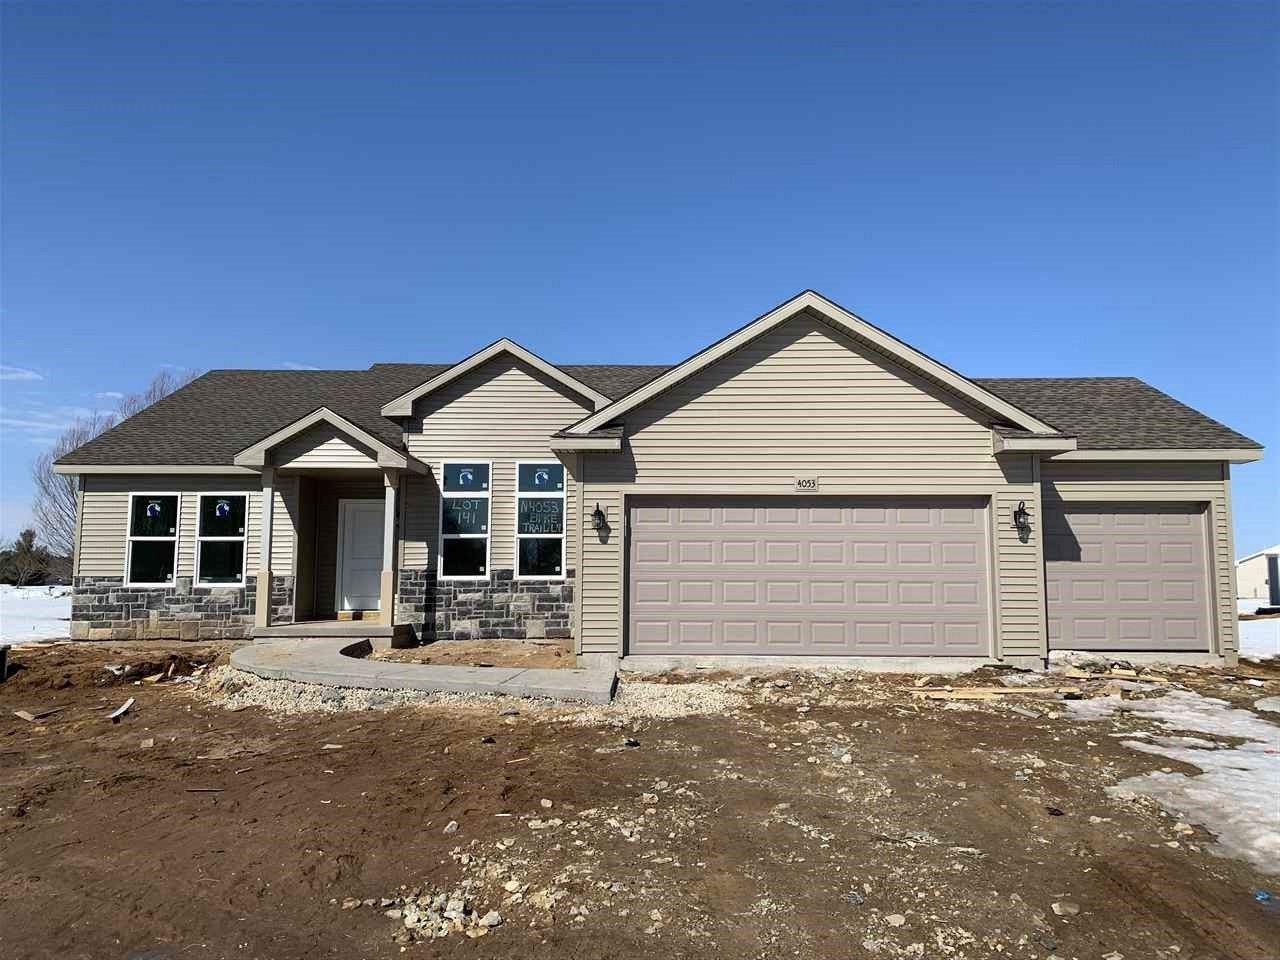 f_1906138 Our Listings at Best Realty of Edgerton